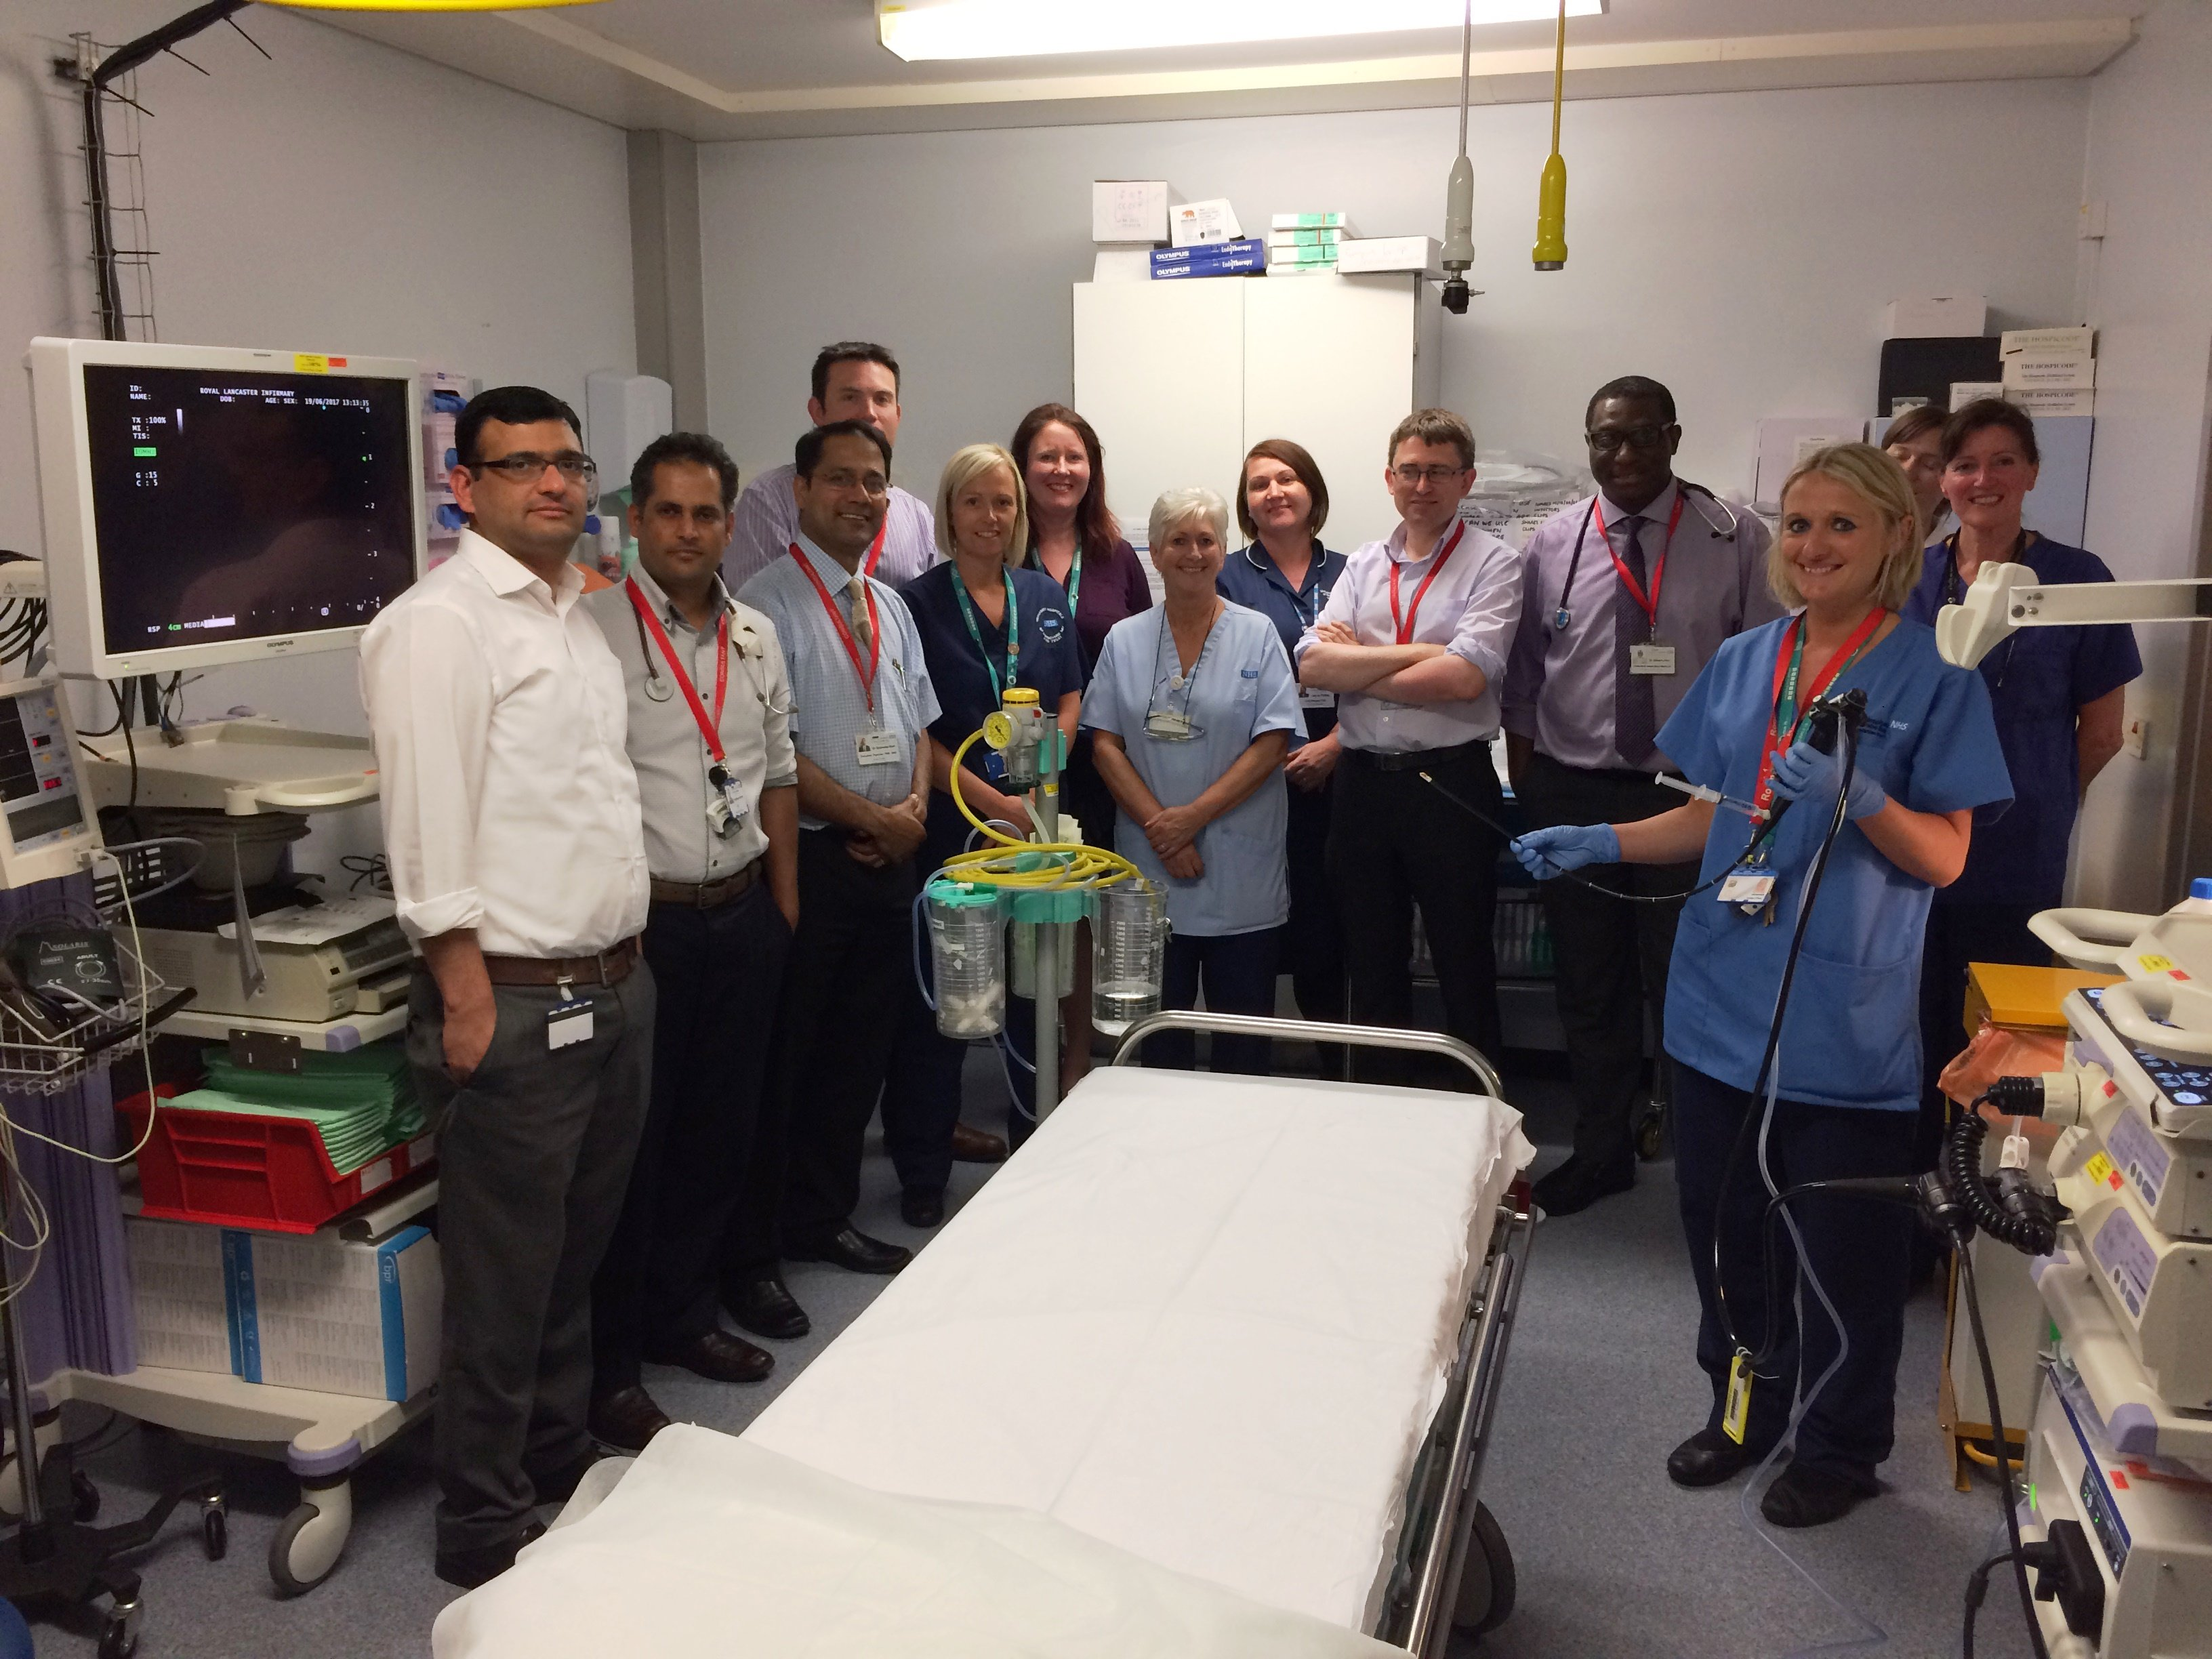 Patients handed more control over their care as new respiratory service to be rolled out featured image